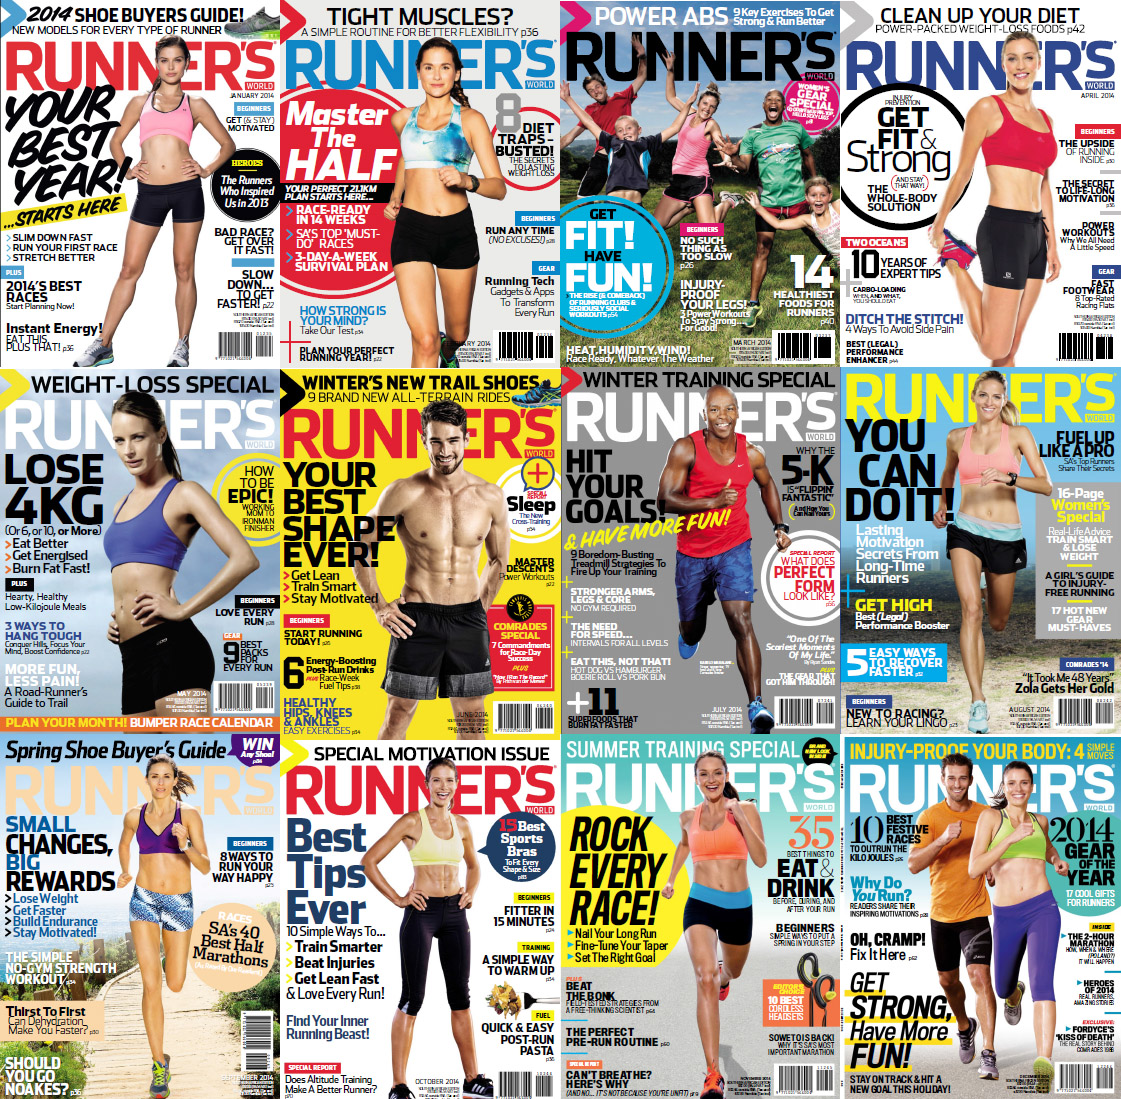 Runner's World South Africa Magazine - 2014 Full Year Issues Collection free download